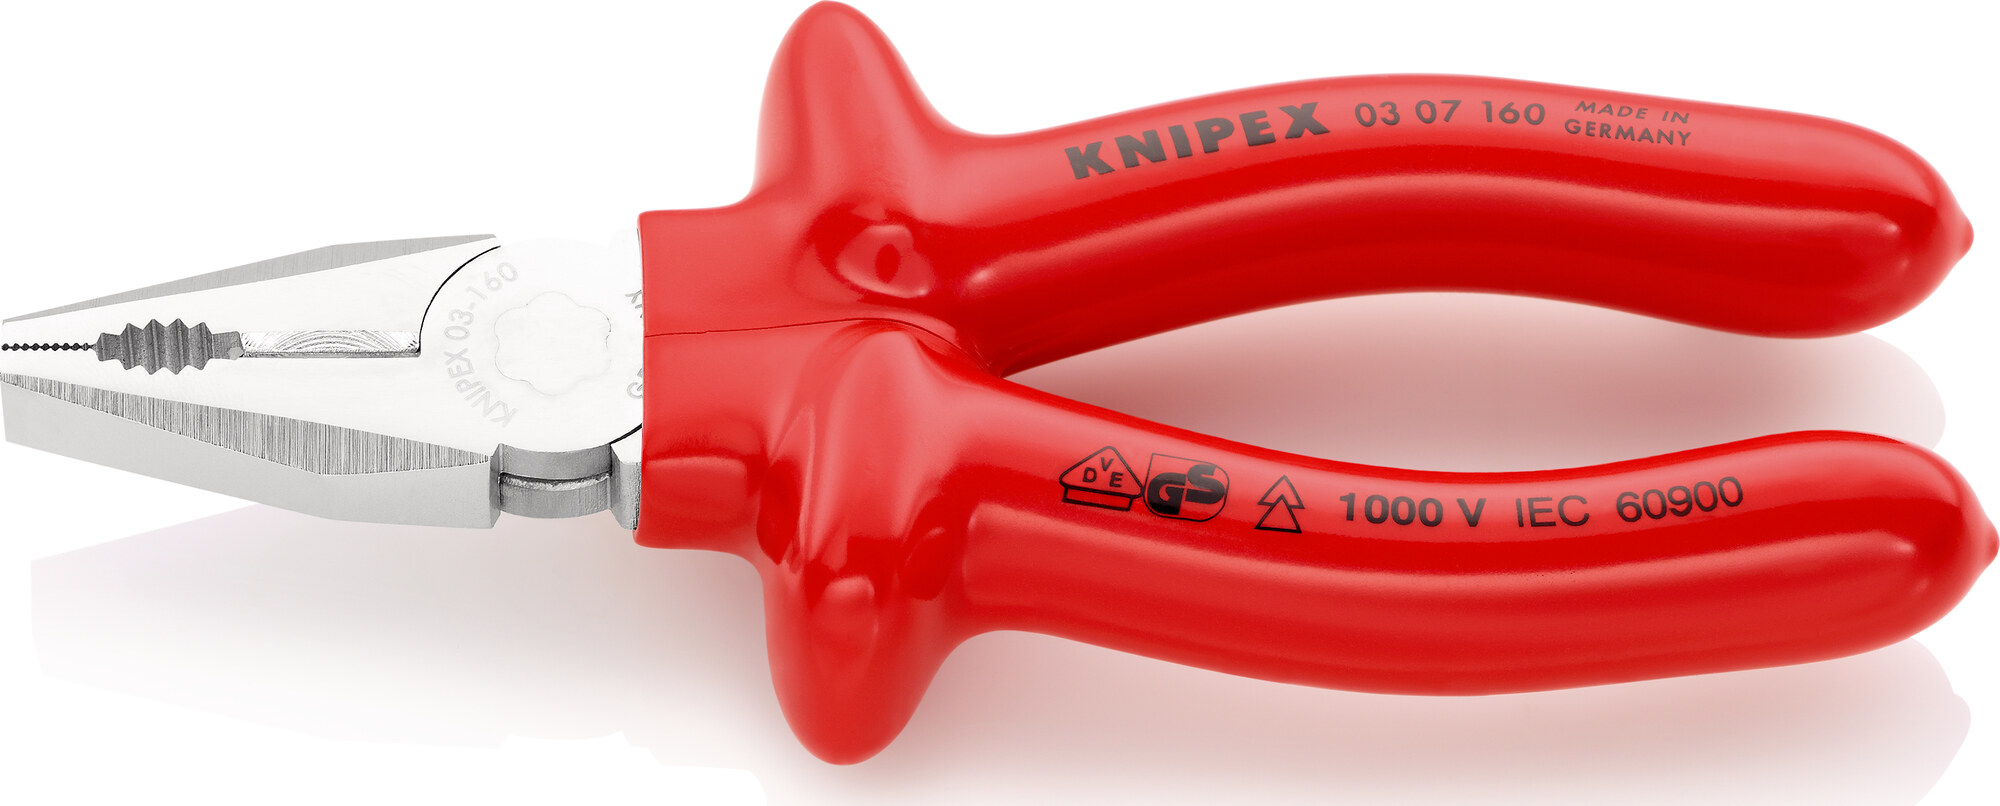 KNIPEX Combination Pliers chrome plated with dipped insulation, VDE-tested 160 mm, No KNPK0161_Greif_s.jpg